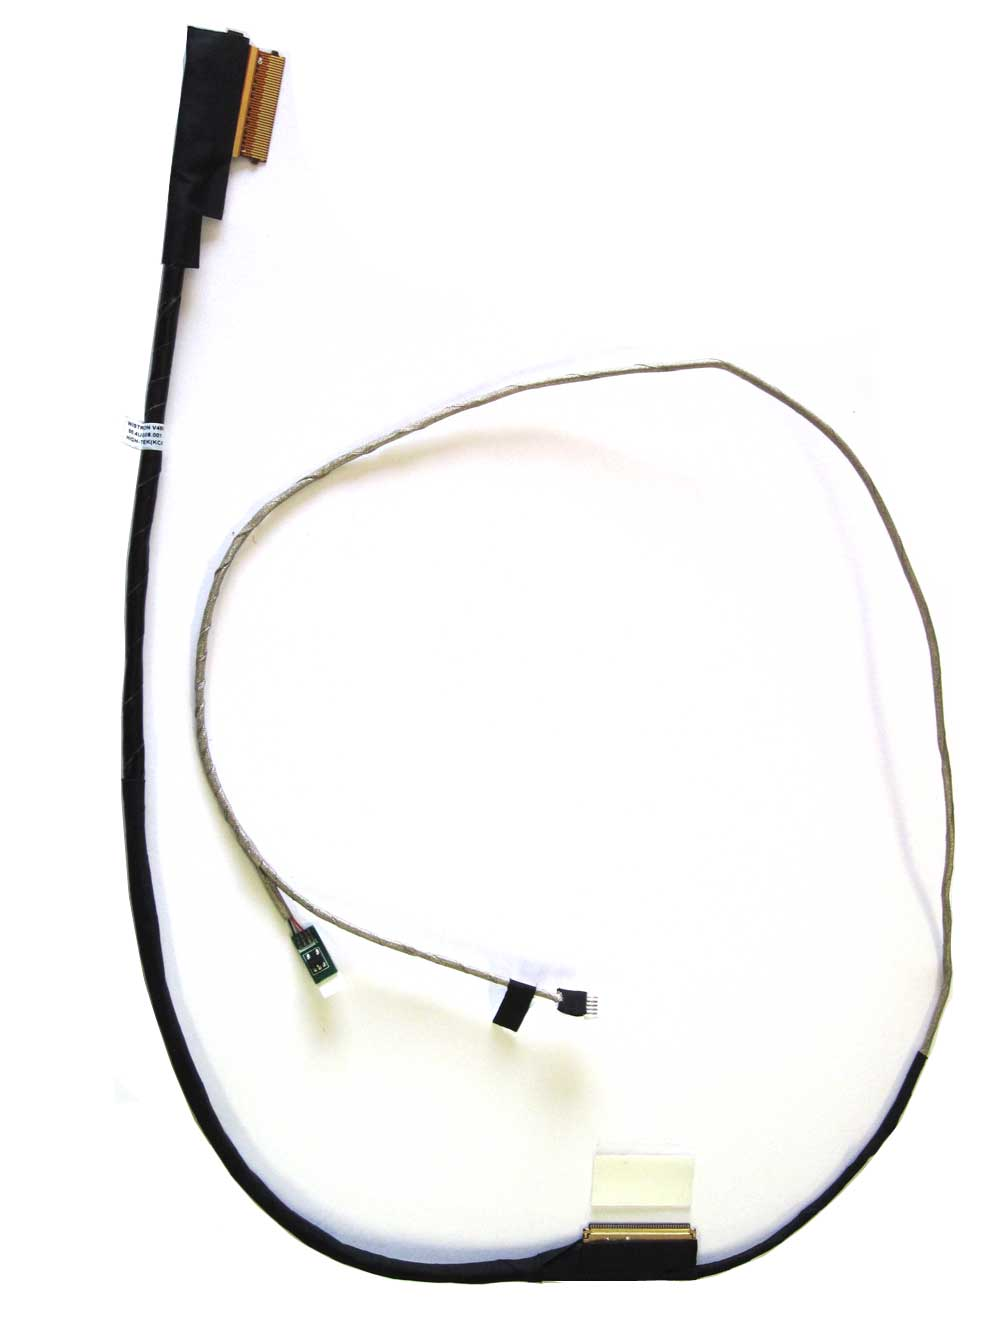 IBM LCD CABLE V480S